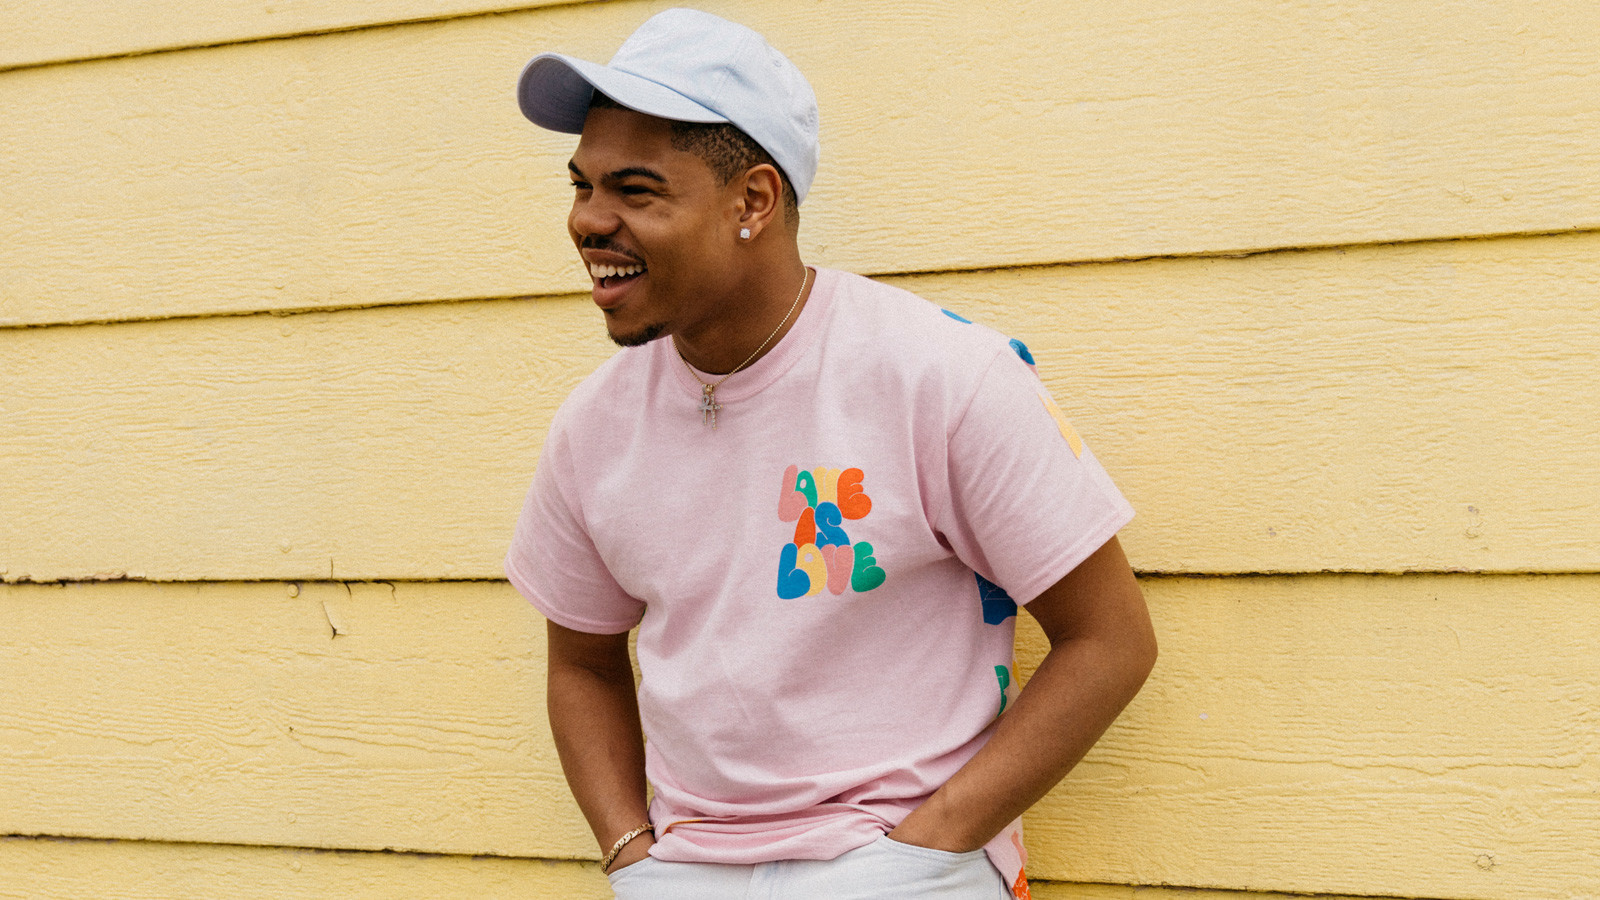 Chicago hip-hop artist Taylor Bennett is part of Urban Outfitters' campaign for the brand's colorful pride collection of goods.